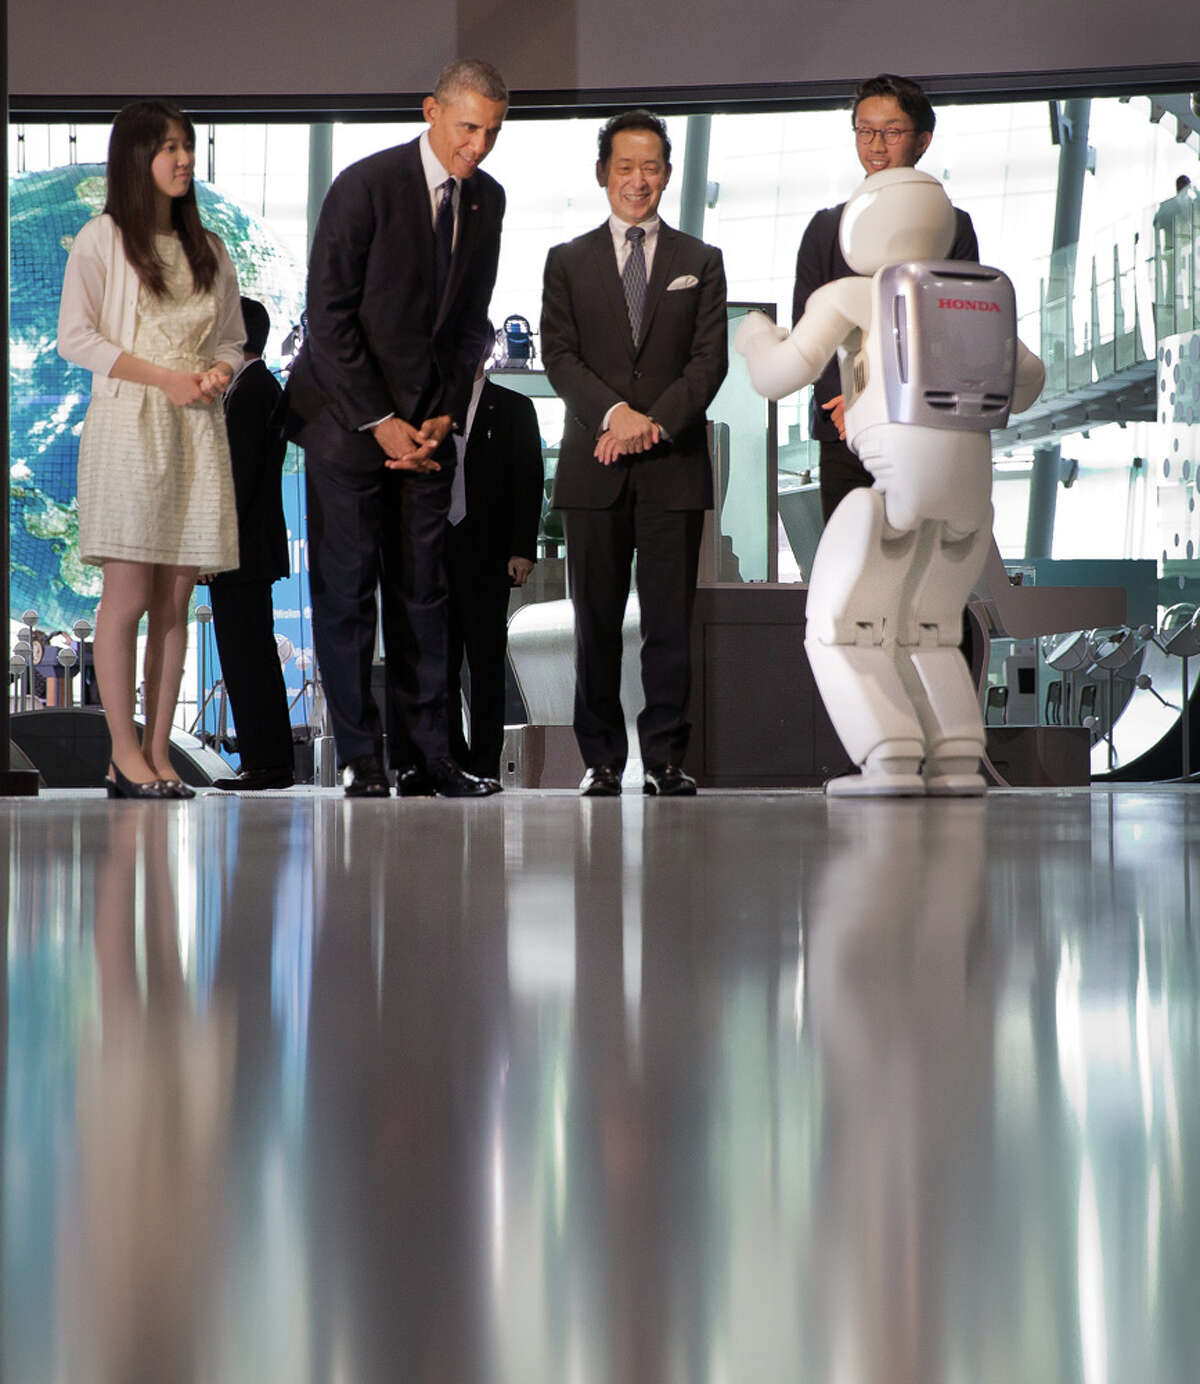 """**EDS: RETRANSMISSION TO PROVDE ALTERNATIVE CROP** President Barack Obama watches a robot made by Honda, named ASIMO, perform during a tour of the National Museum of Emerging Science and Innovation in Tokyo, April 24, 2014. Obama said he found the several robots he saw demonstrations from during the tour """"a little scary"""" and """"too life-like."""" (Stephen Crowley/The New York Times)"""